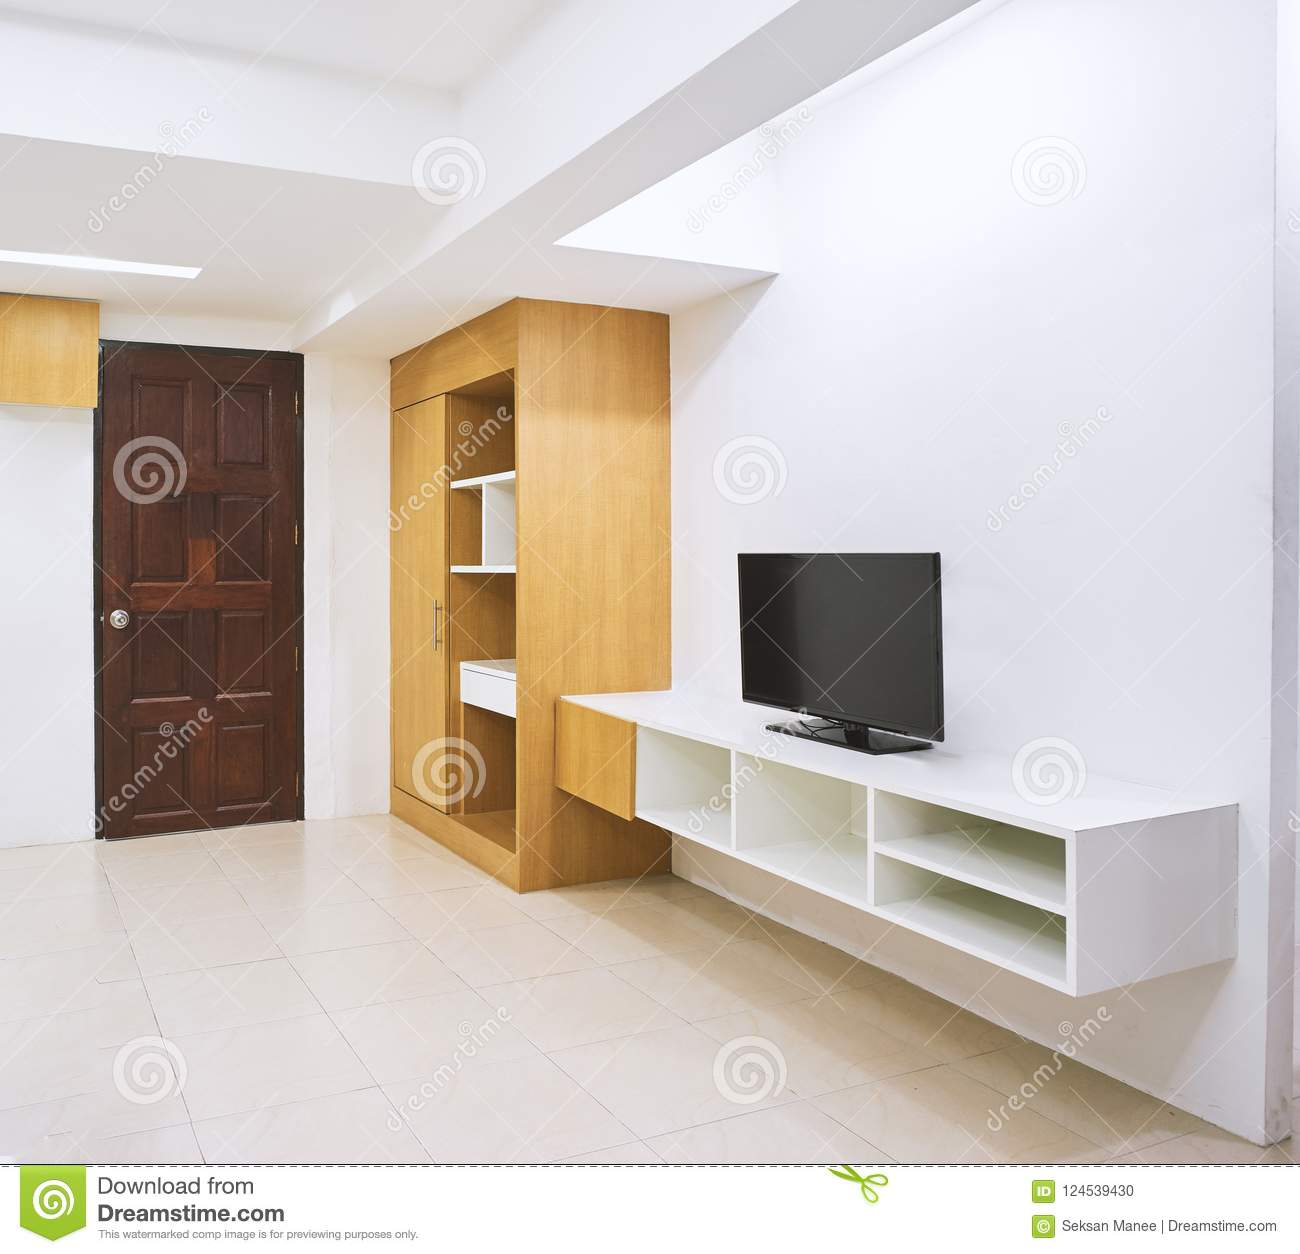 Concept of modern living apartment room decoration with built in furniture with tv and closet mock up in the white room